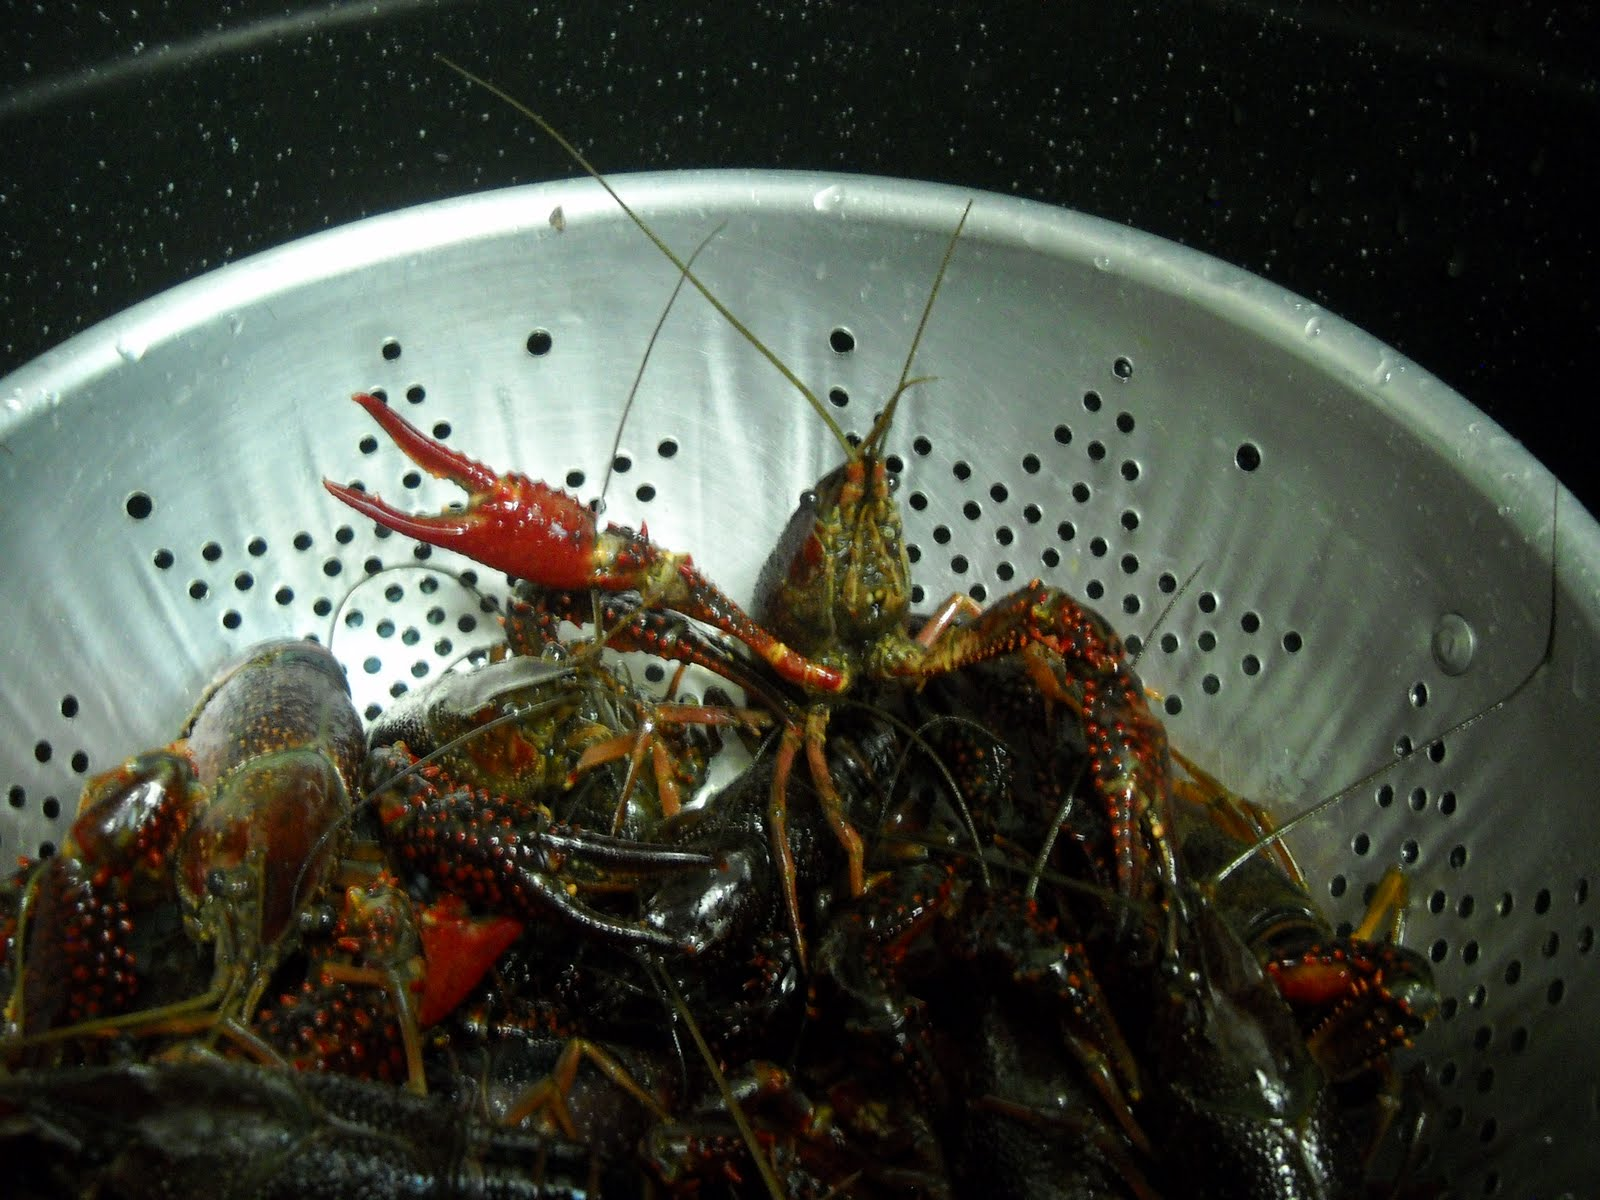 While You Do This, Boil Enough Water To Cover The Crawfish Measure This Out  By